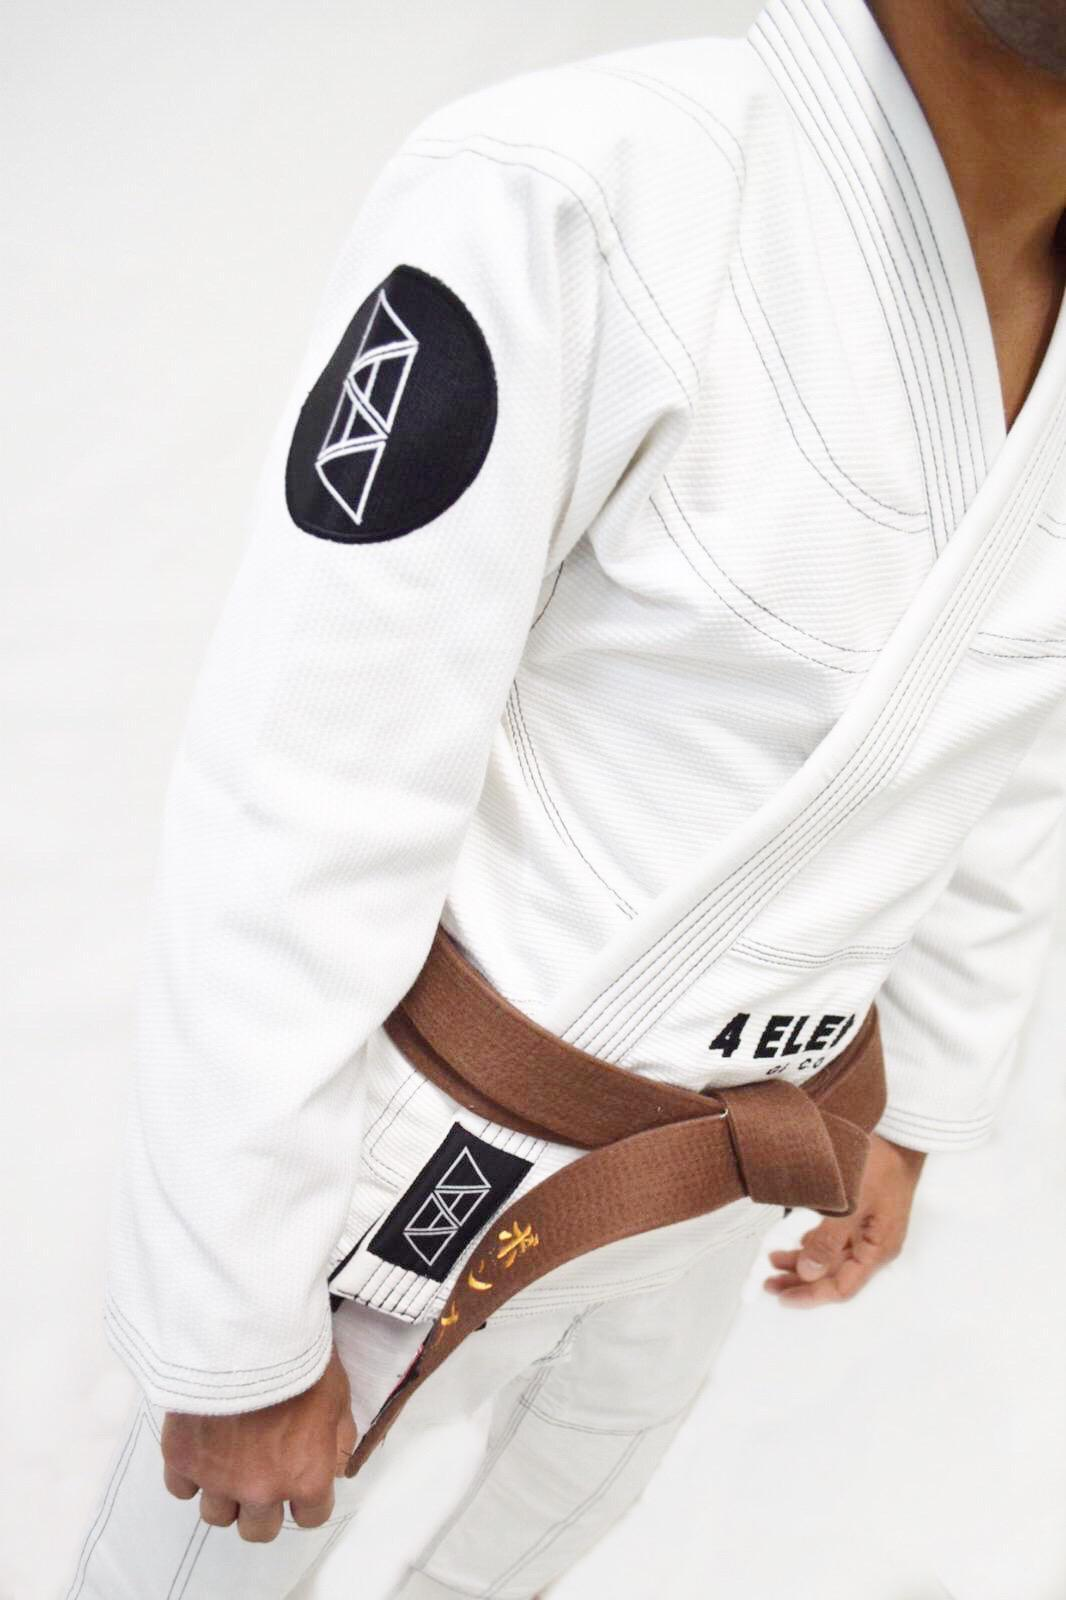 KIMONO INSPIRE- WHITE (CUSTOMIZED 4E INK PATCH ON THE BACK FOR FREE)